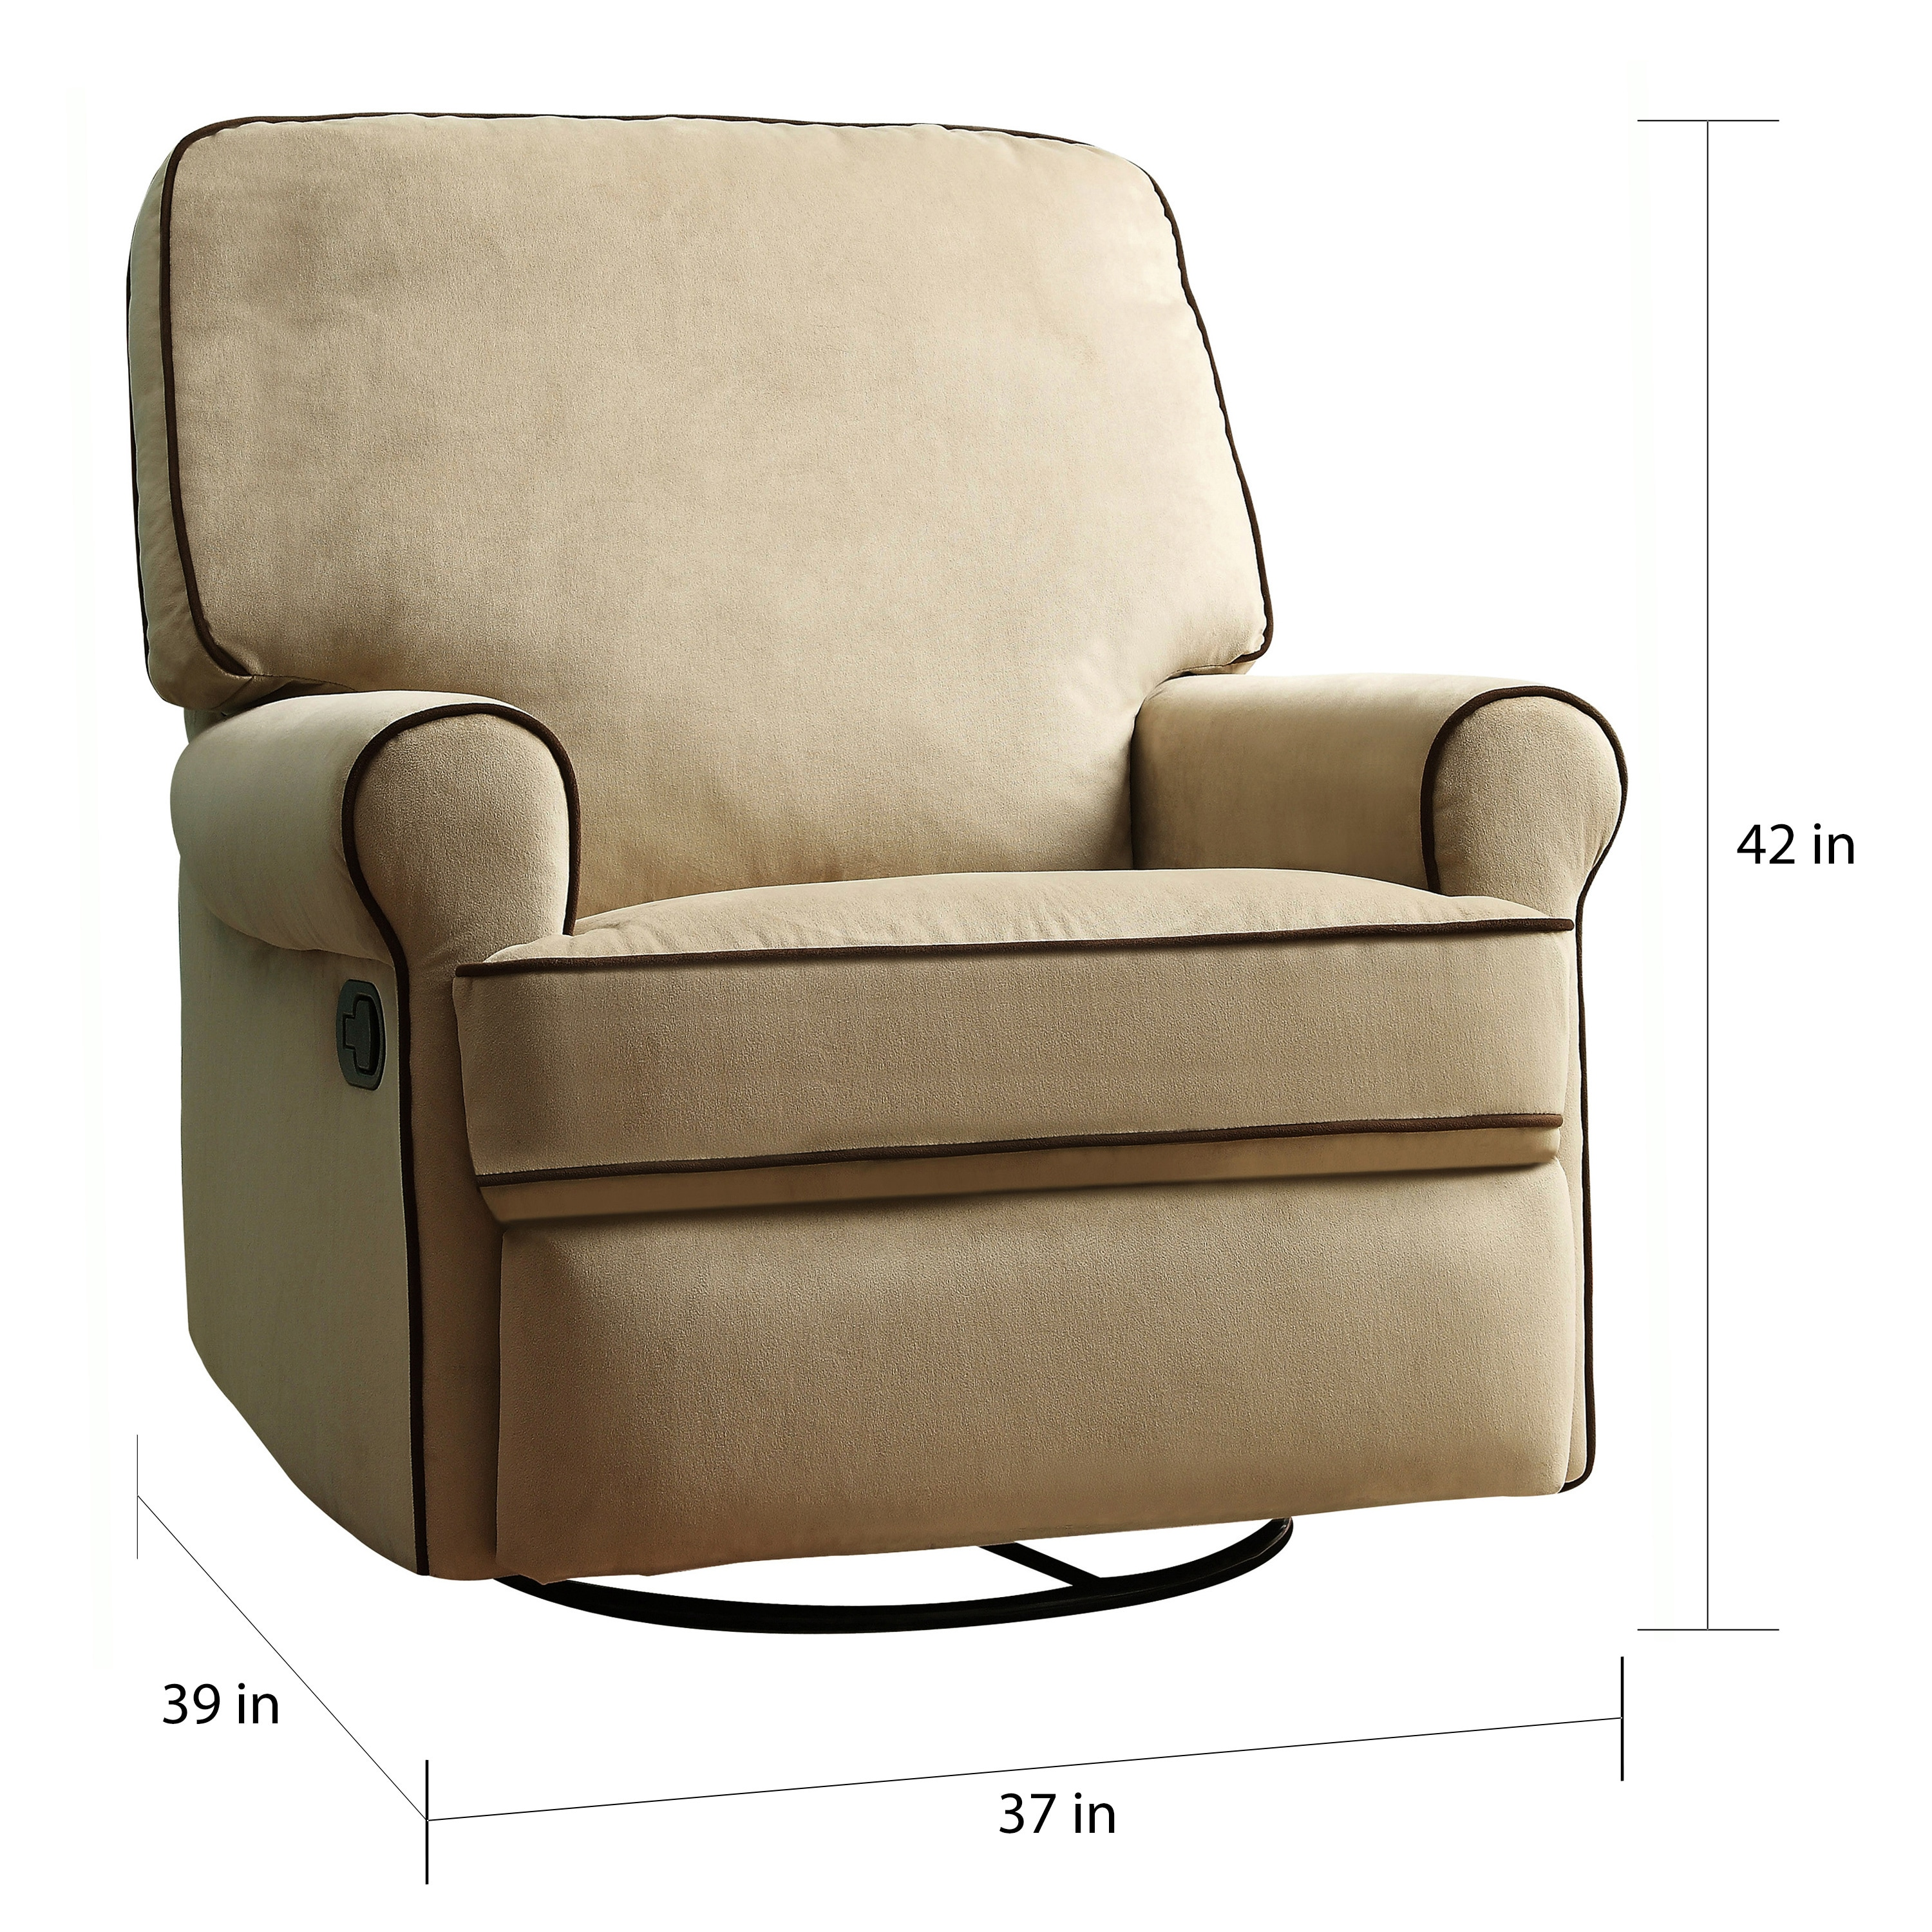 Chloe Sand Fabric Nursery Swivel Glider Recliner Chair On Free Shipping Today 7942162